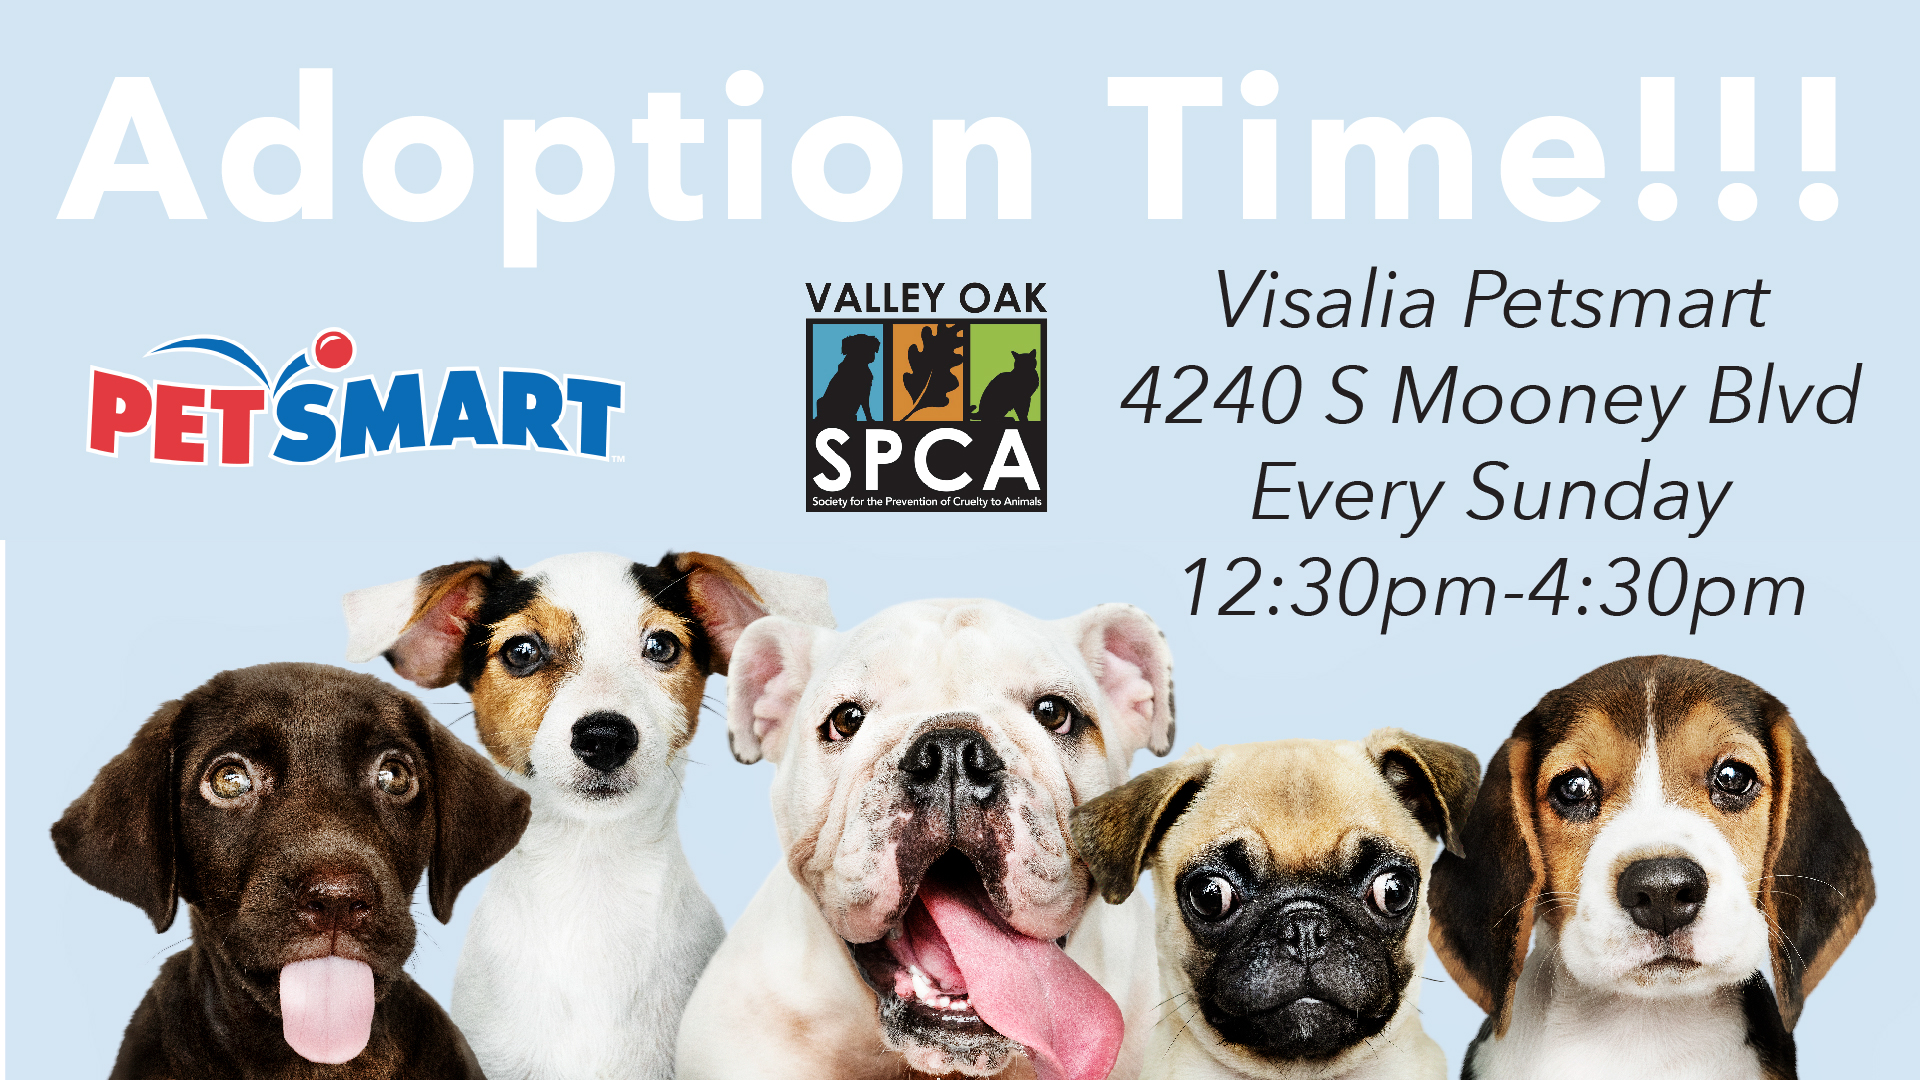 Visalia Petsmart Adoption.jpg